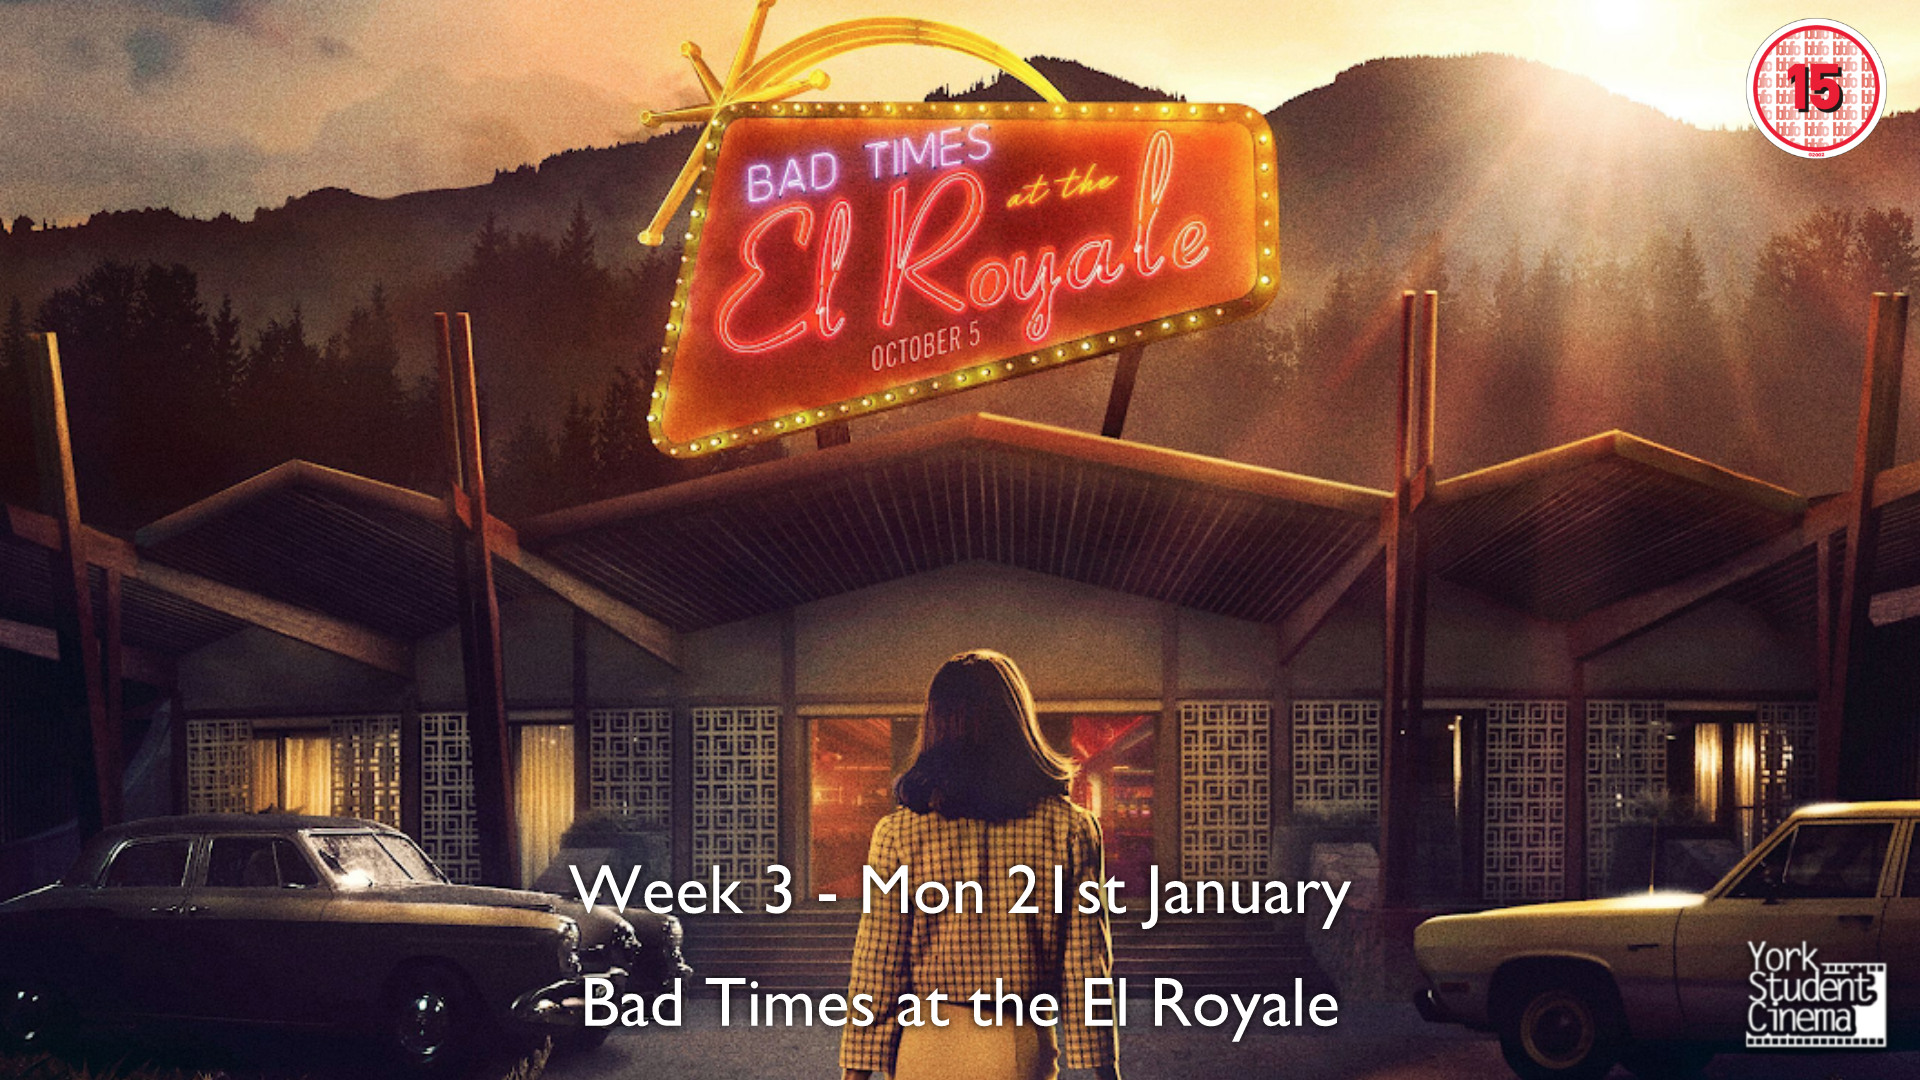 YSC Screening of Bad Times at the El Royale